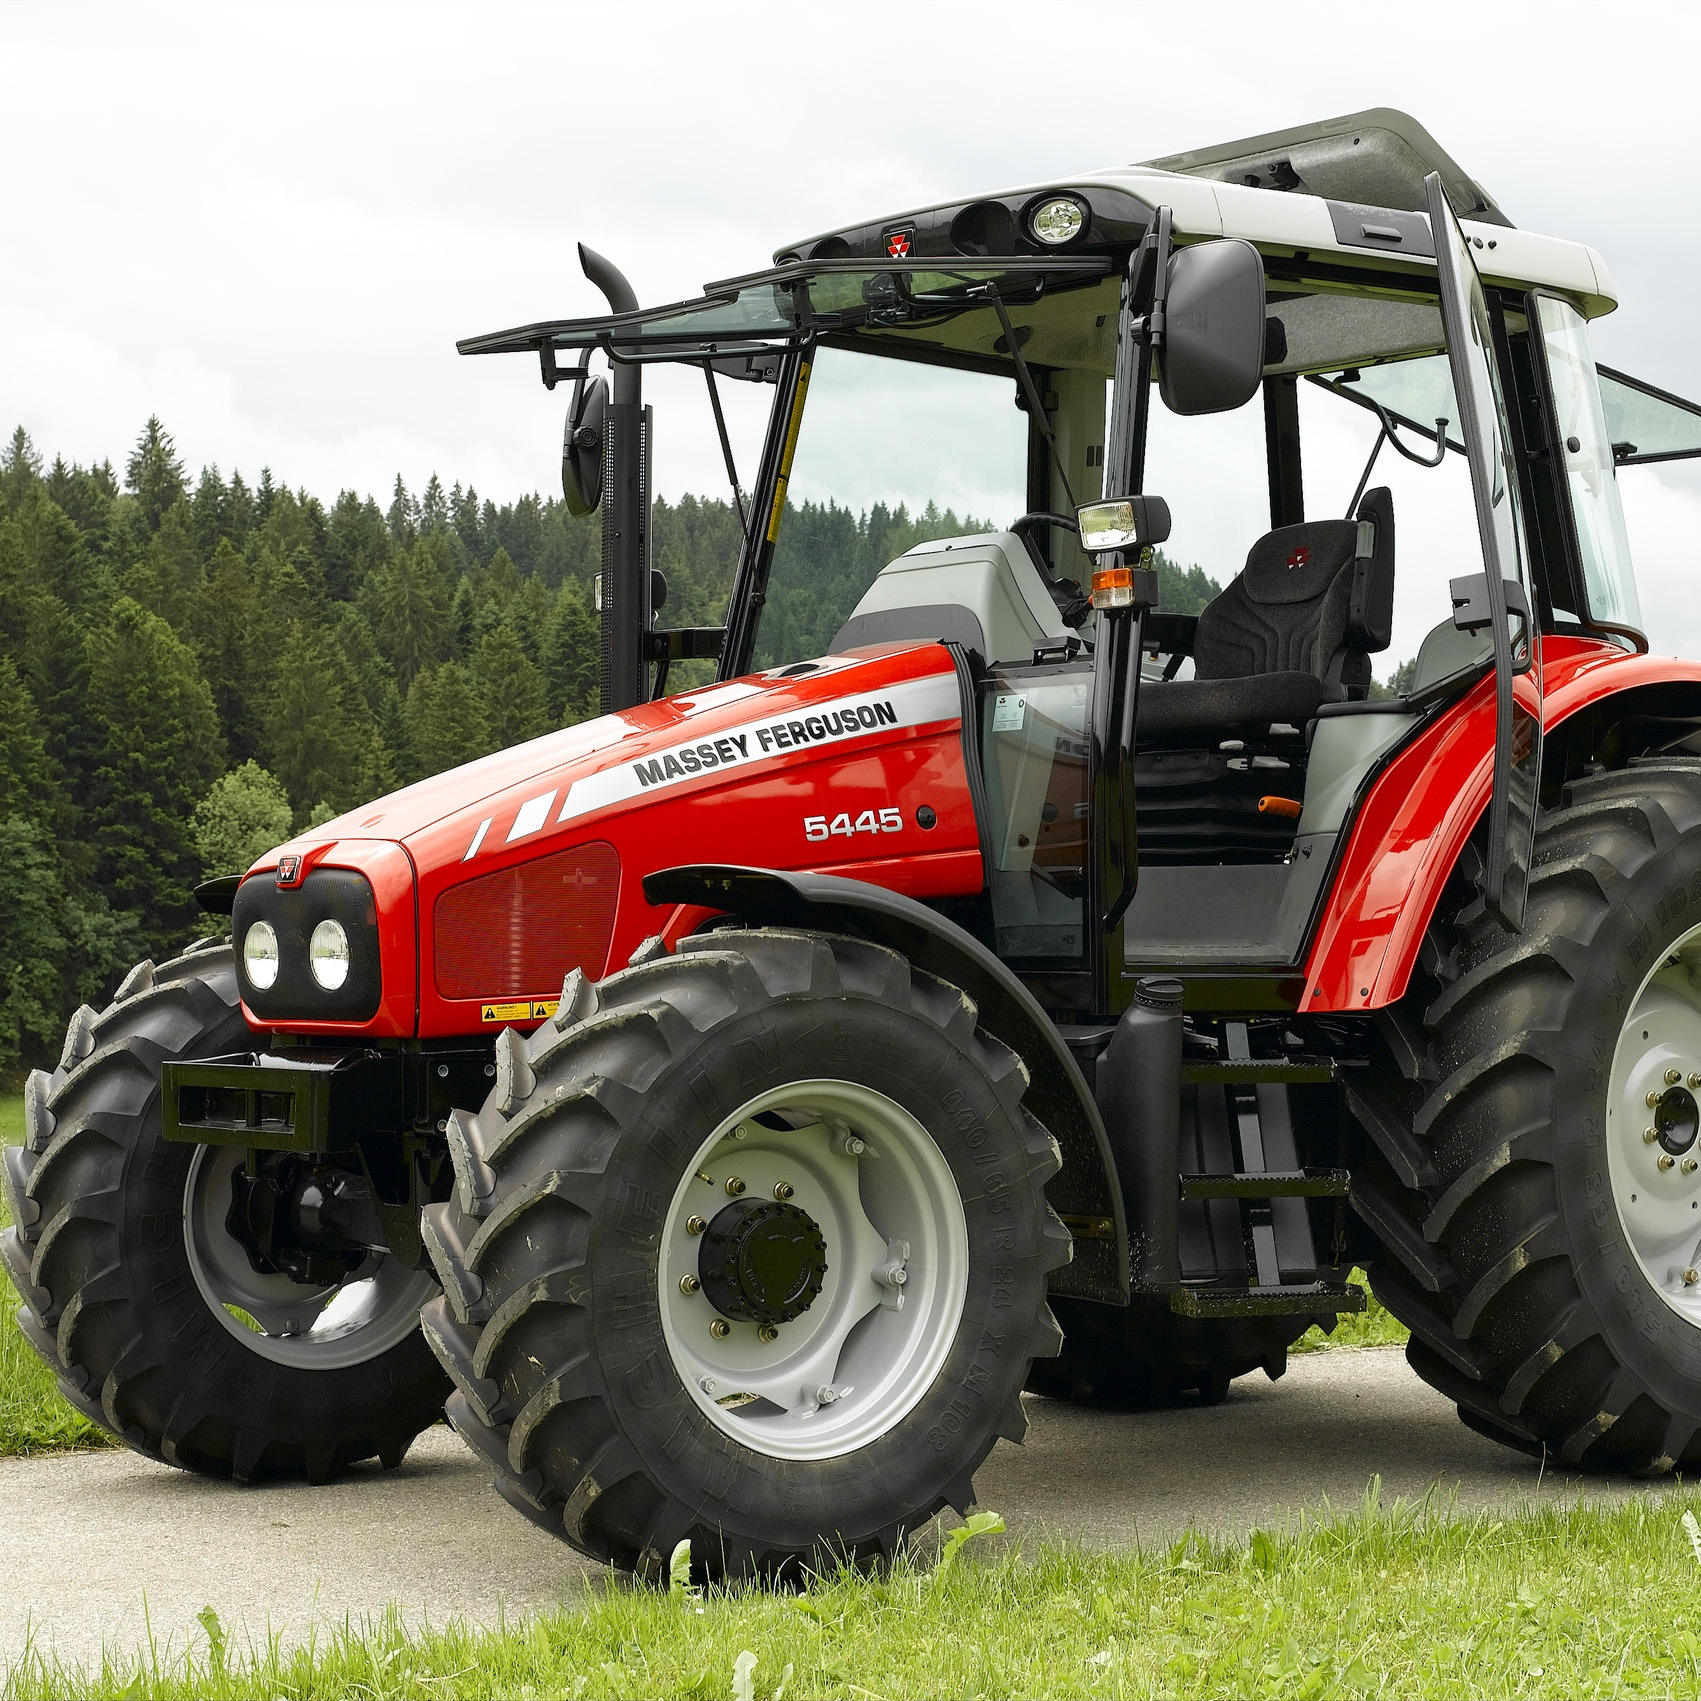 fiche technique tracteur massey ferguson 5445 de 2011. Black Bedroom Furniture Sets. Home Design Ideas